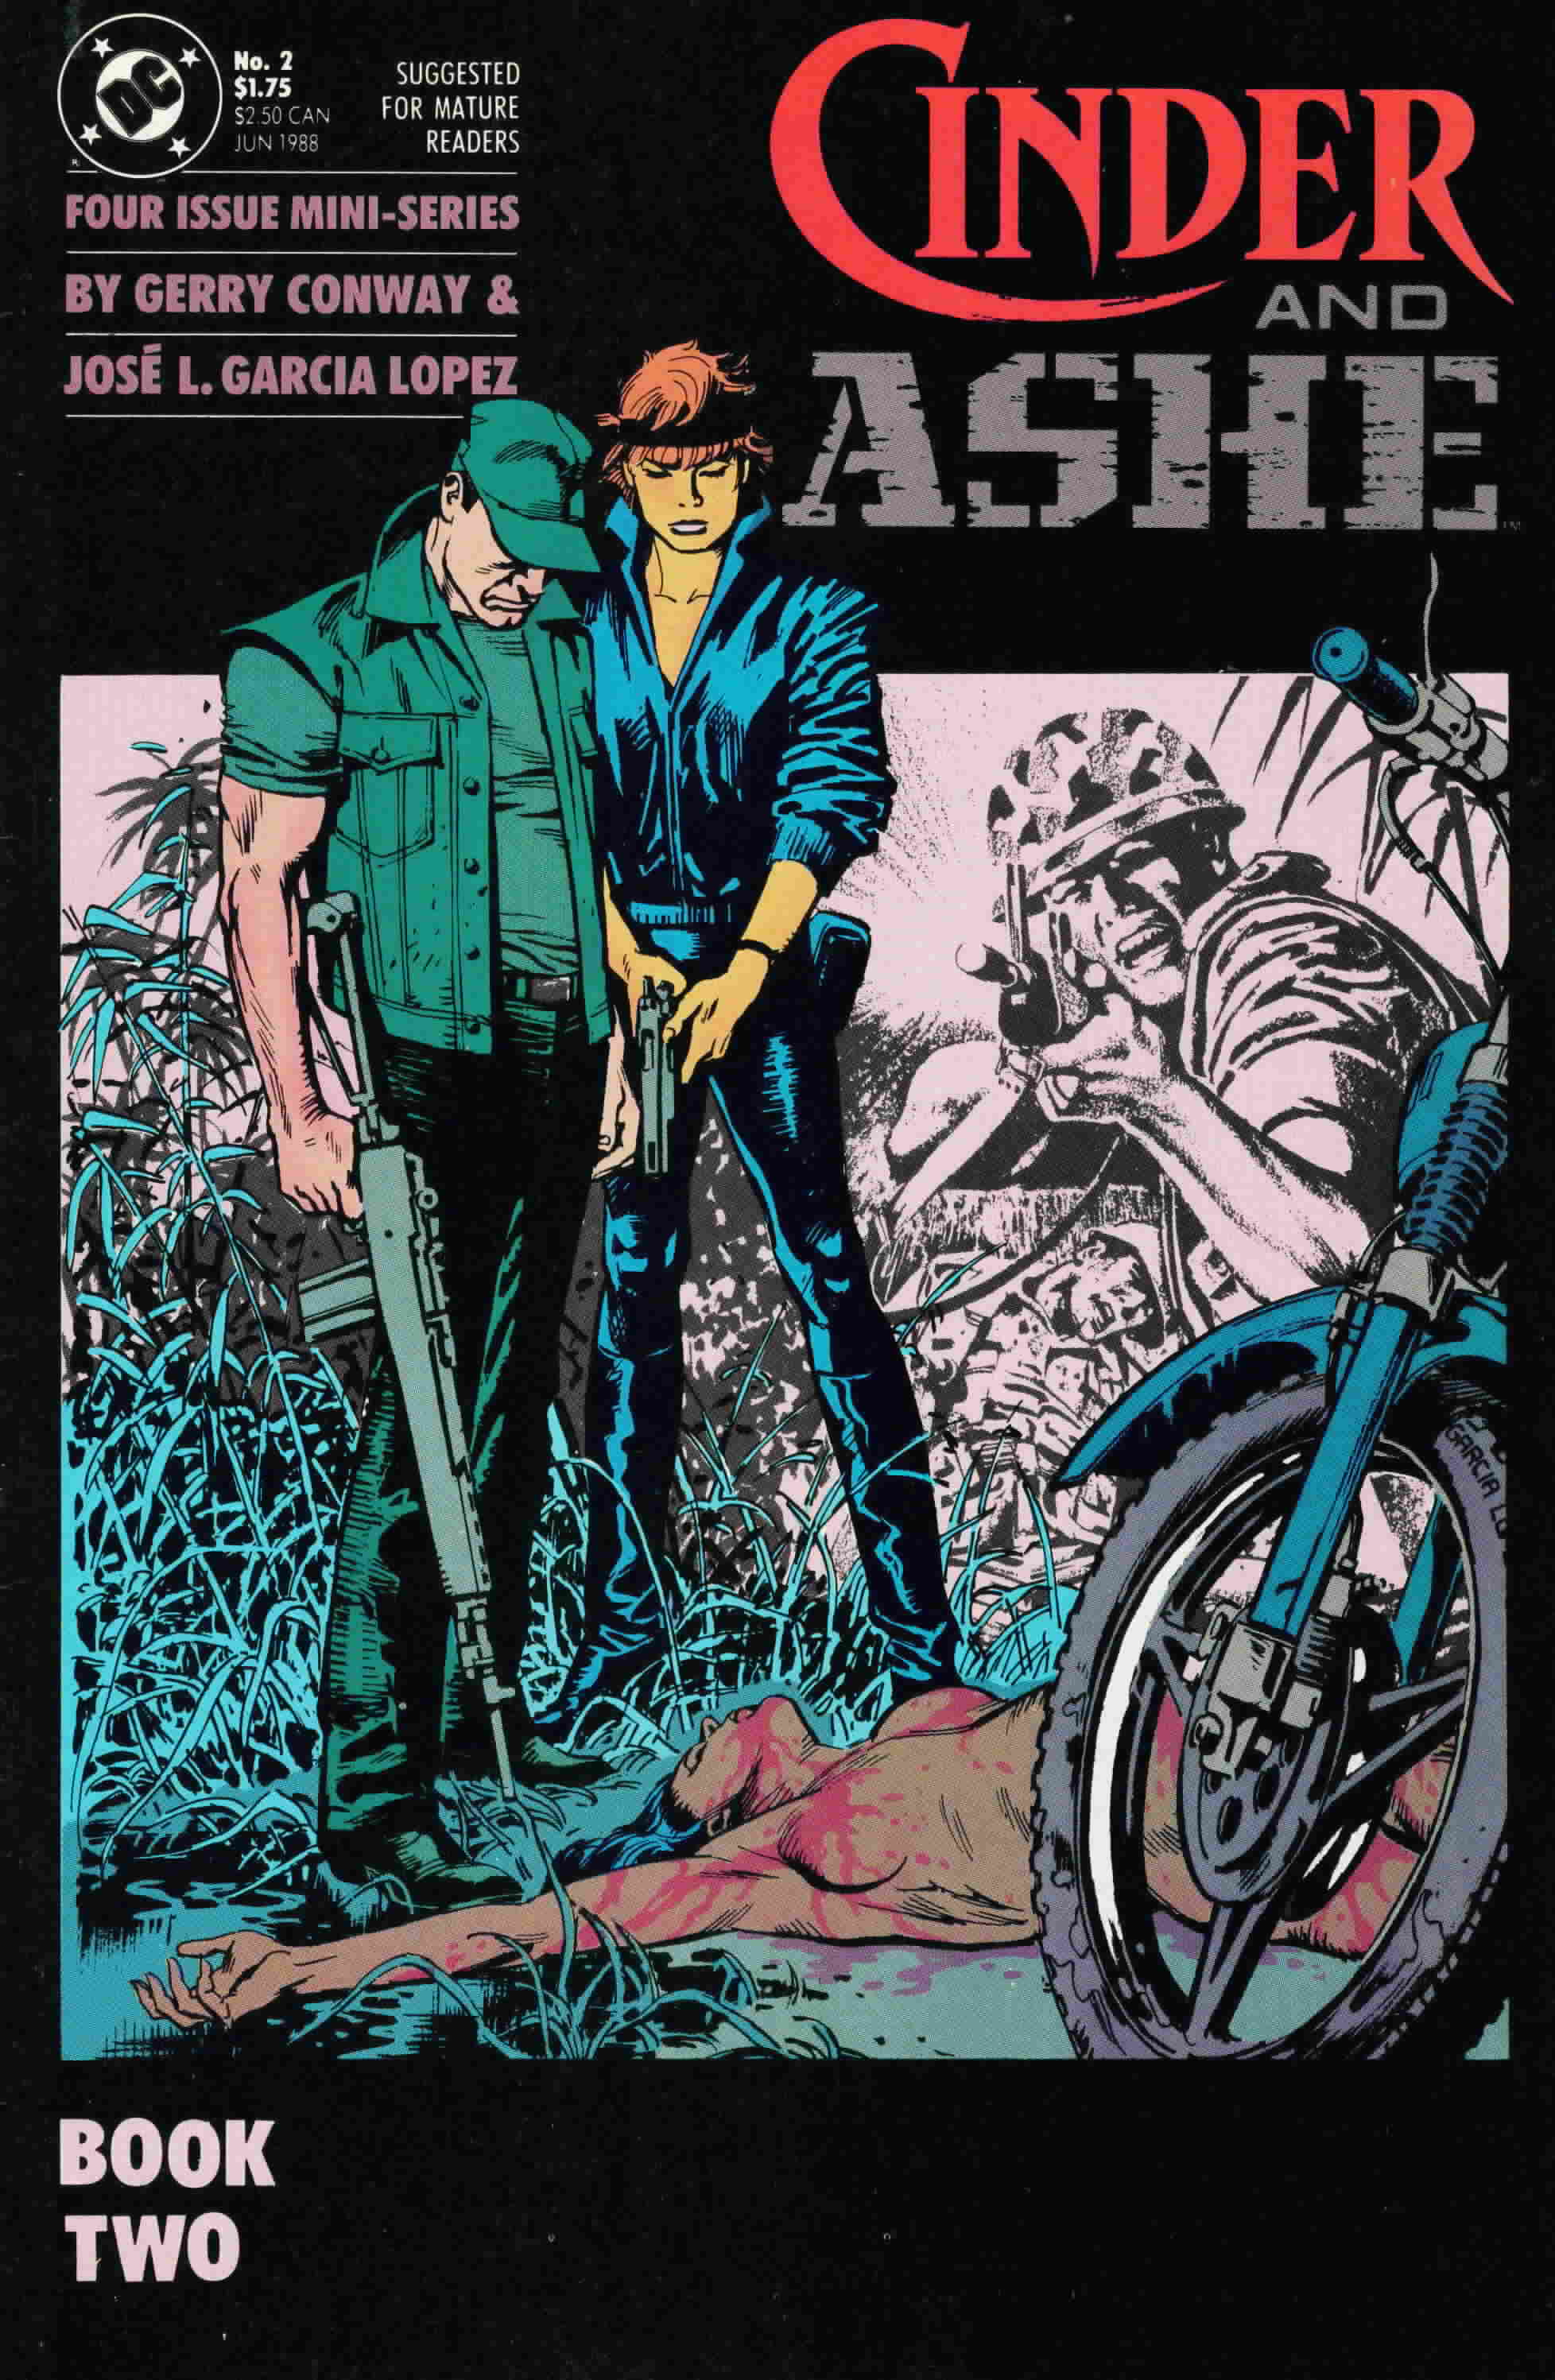 Read online Cinder and Ashe comic -  Issue #2 - 1